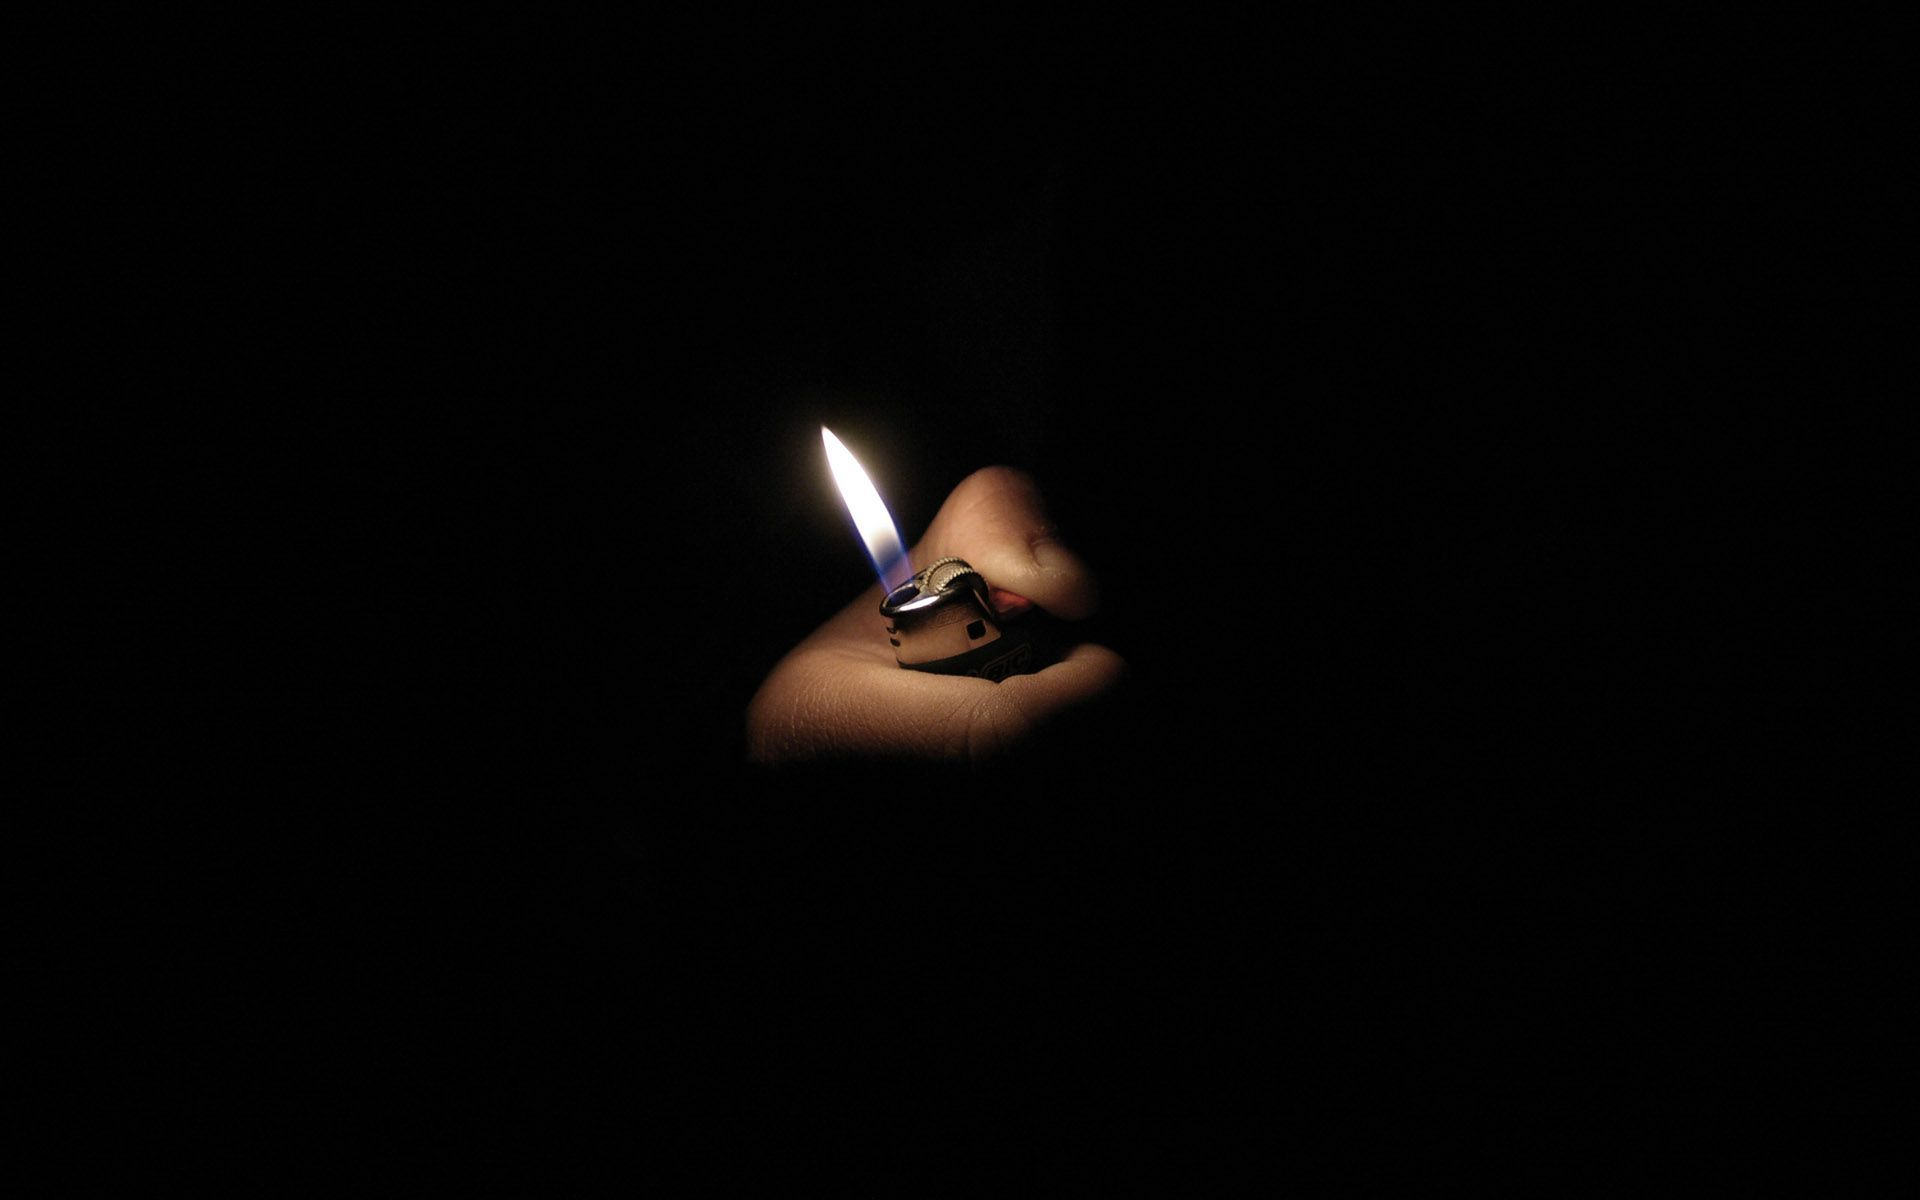 It Is Better To Light A Candle Than To Curse The Darkness Black Hd Wallpaper Black Wallpaper Black Background Photography